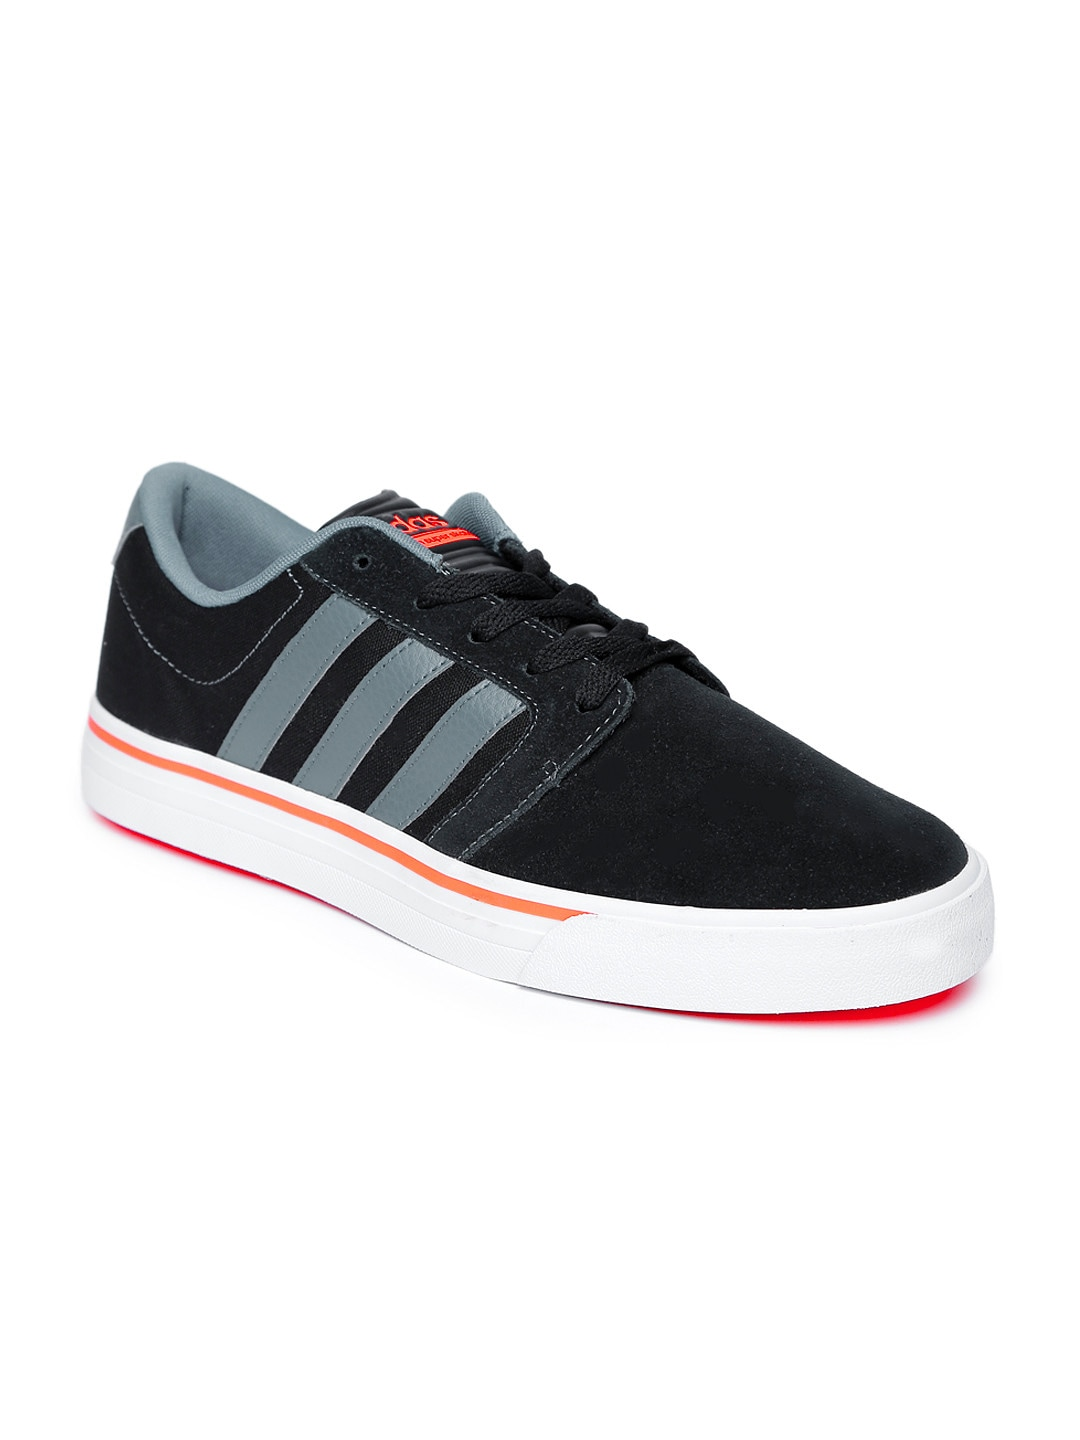 Adidas Neo Shoes Black And Red